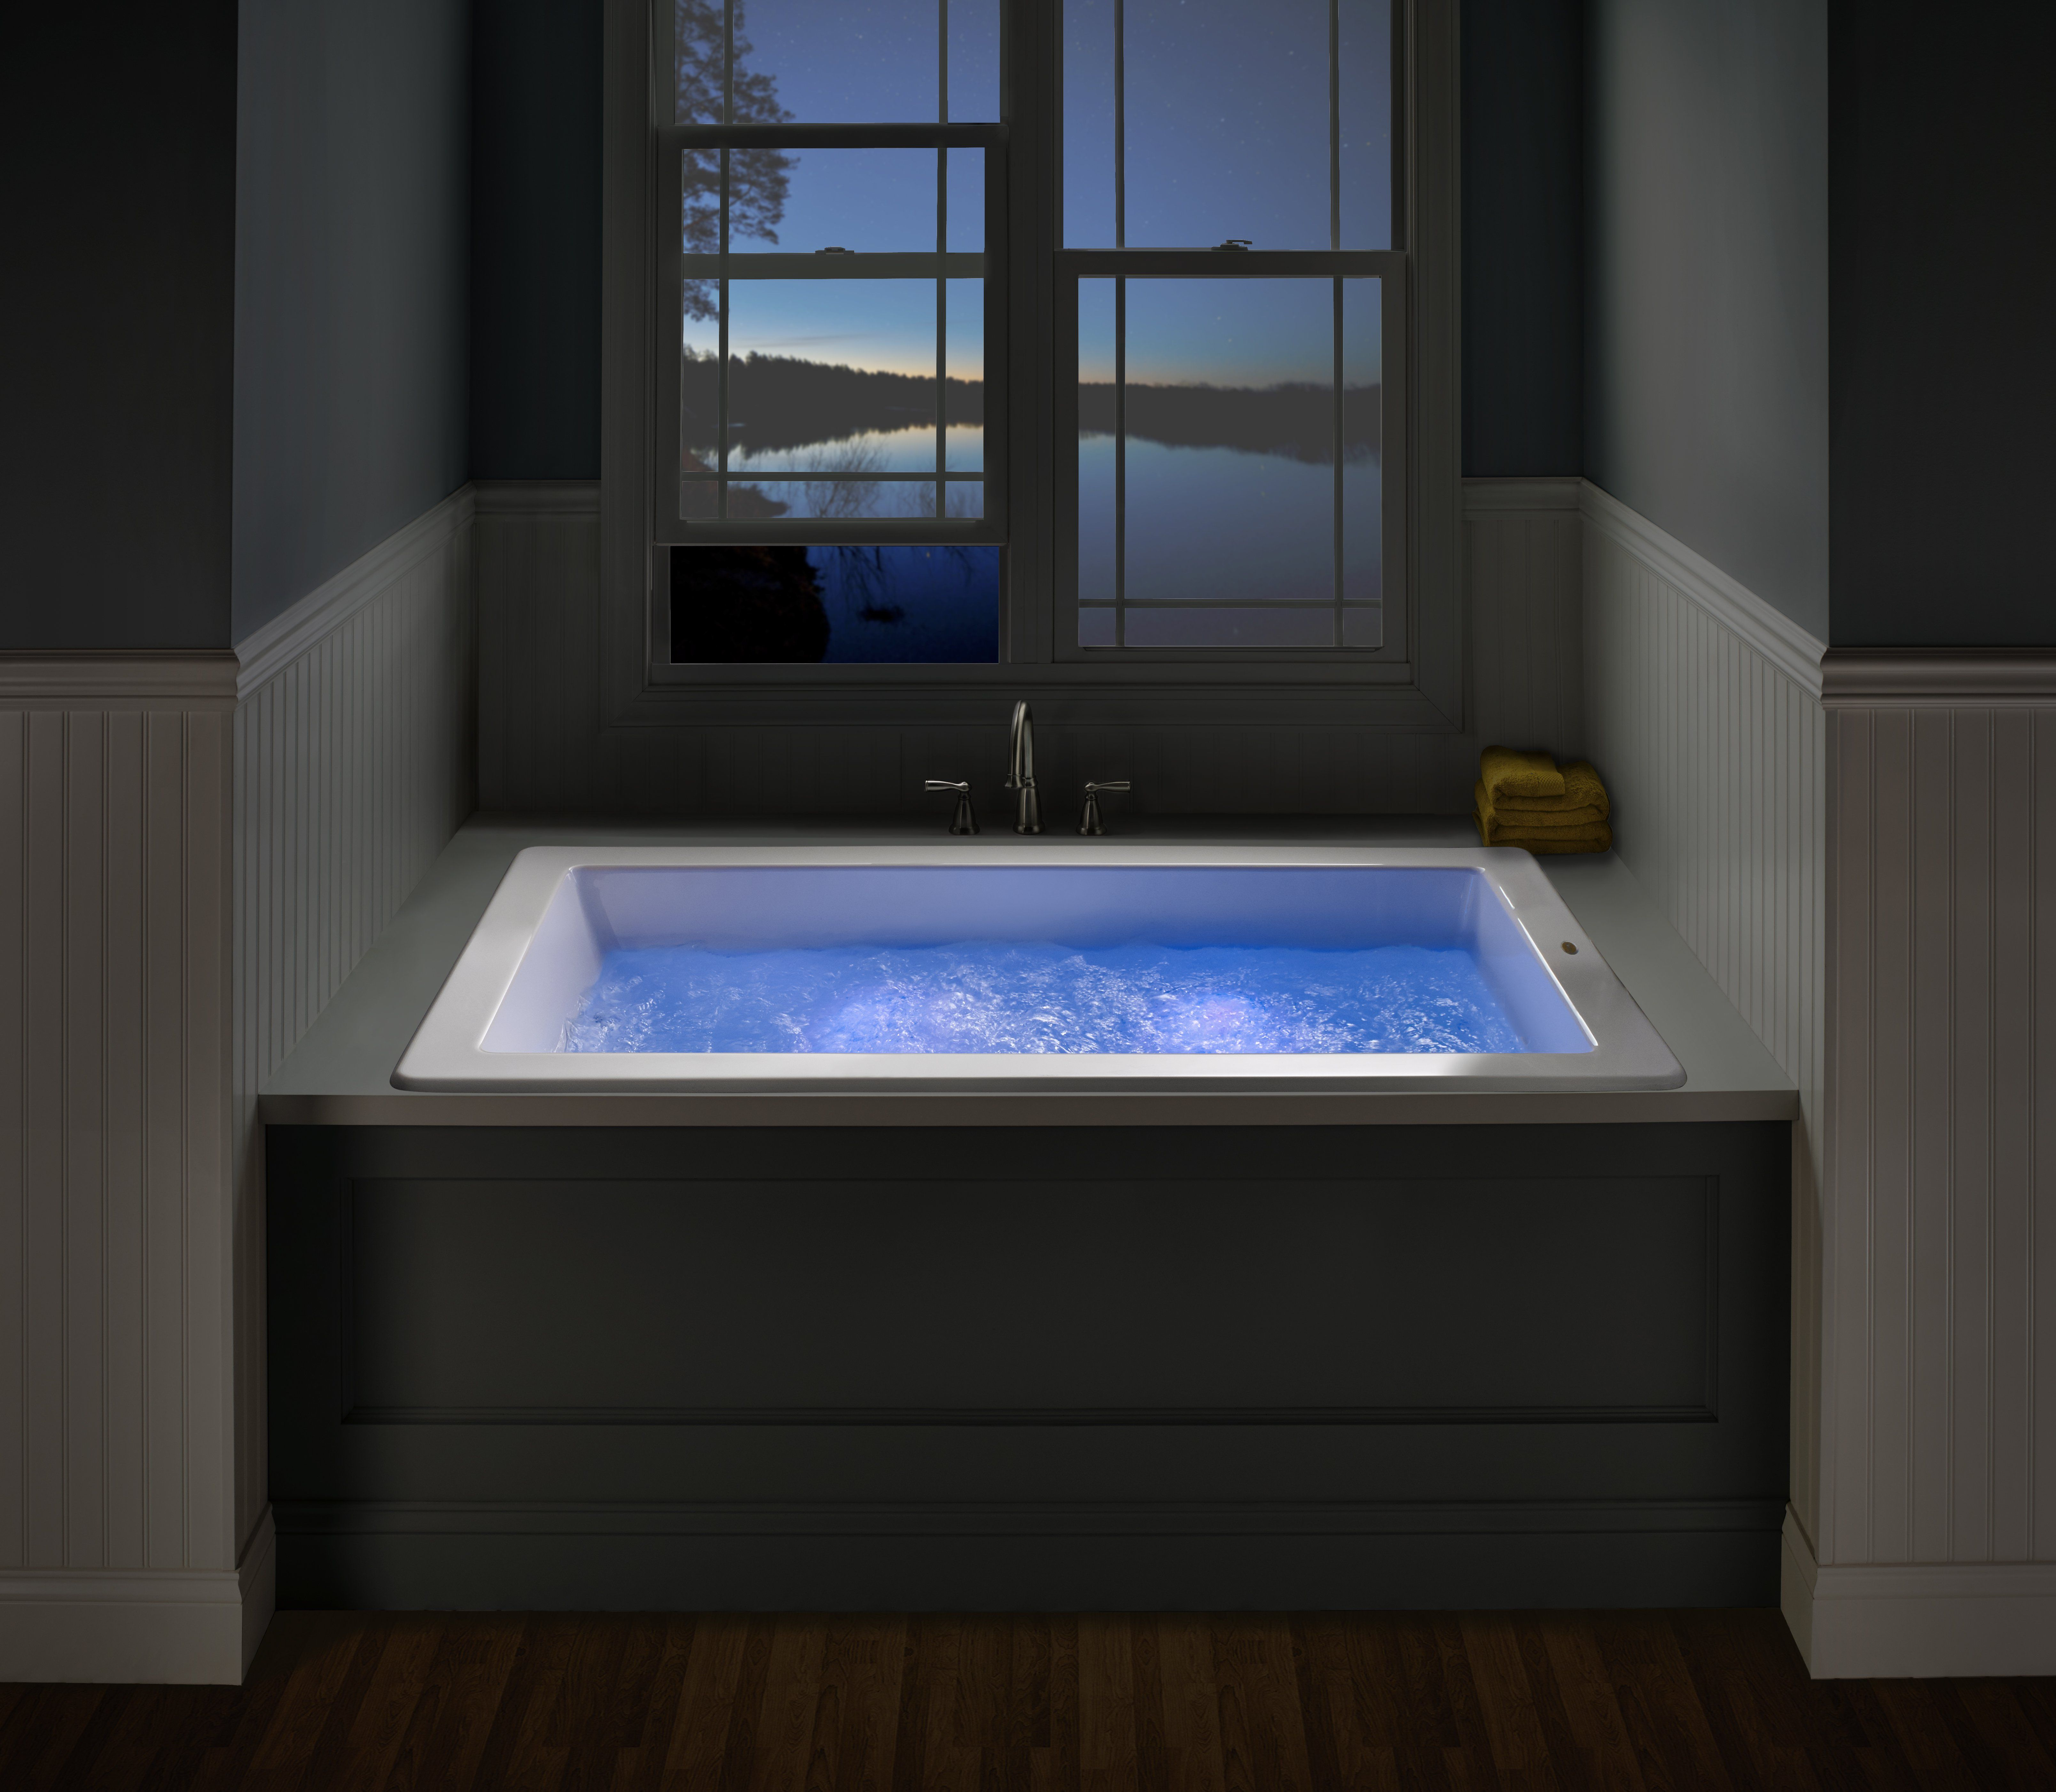 Jacuzzi In The Living Room: Undermount Baths